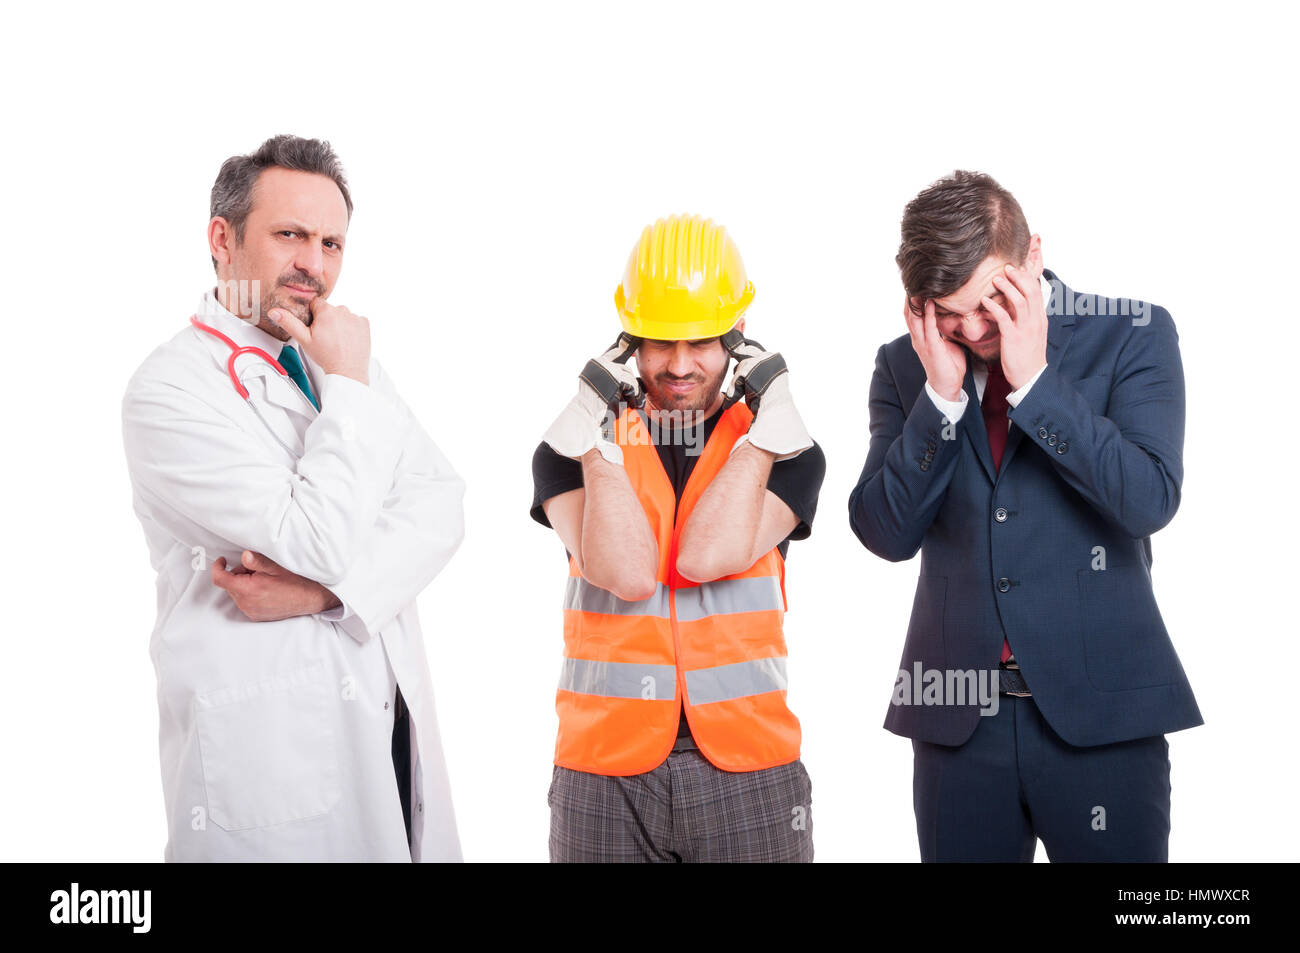 Pensive doctor near stressed engineer and businessman with headache or migraine on white studio background Stock Photo